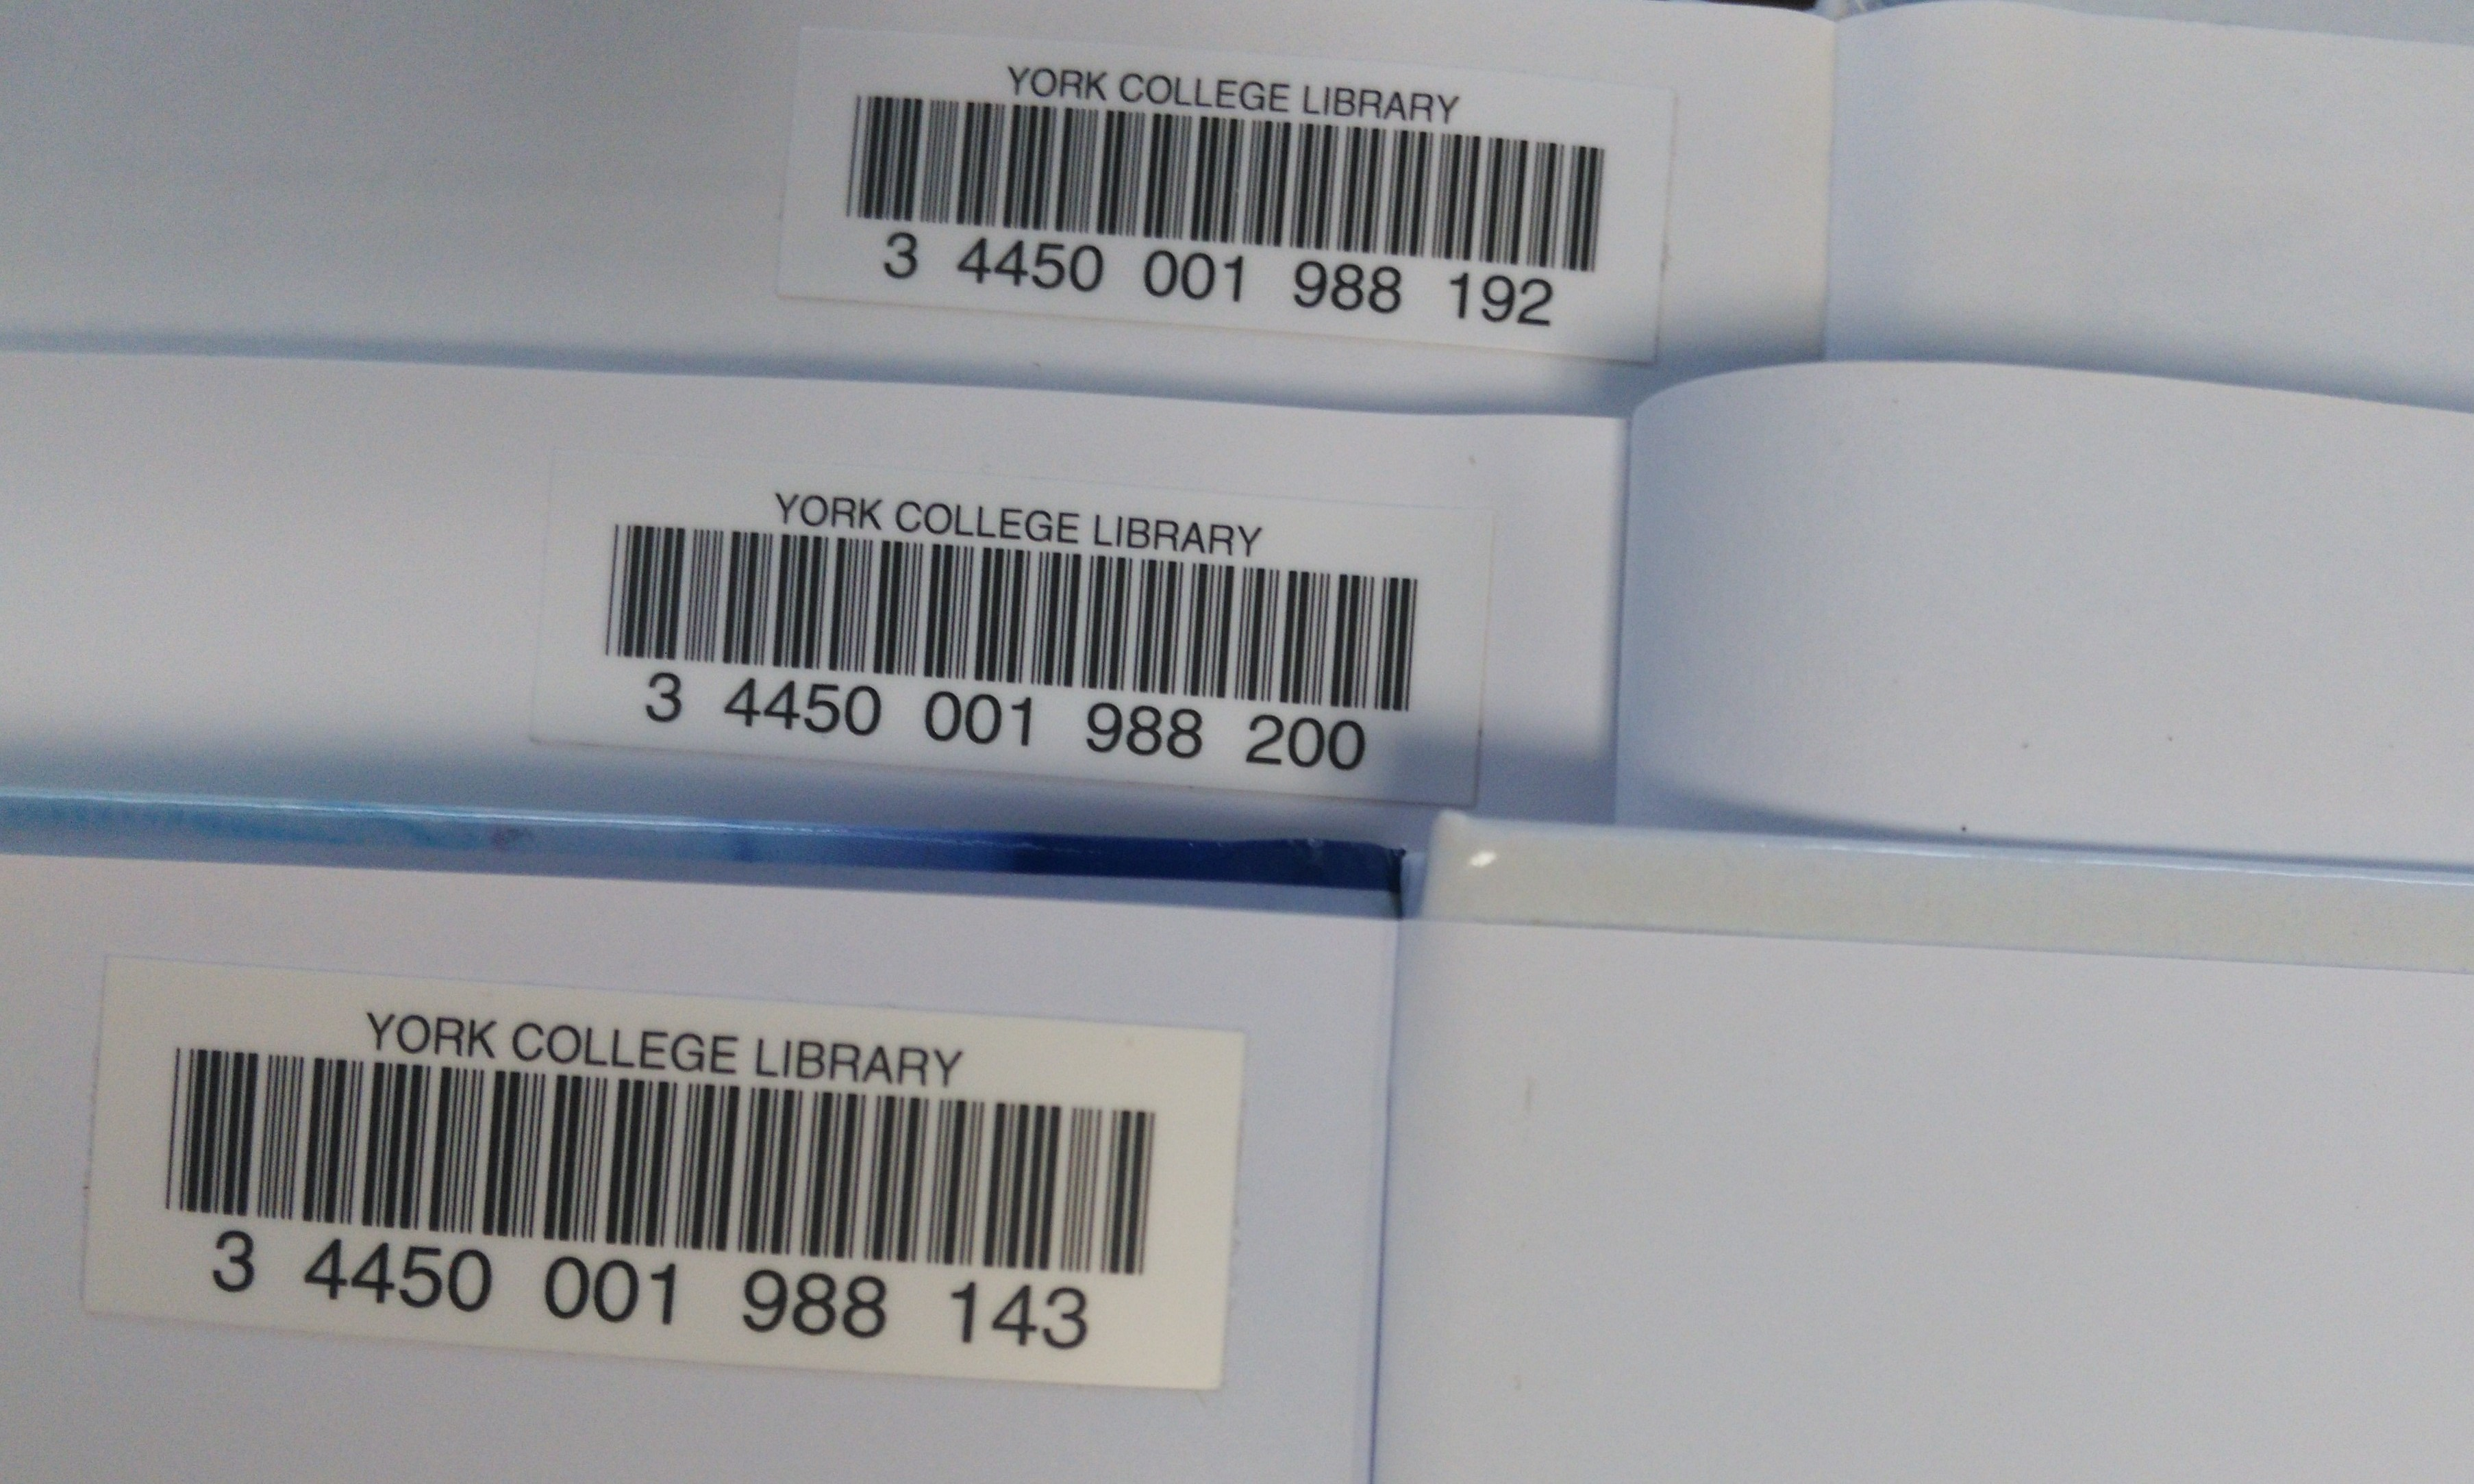 Examples of Barcodes